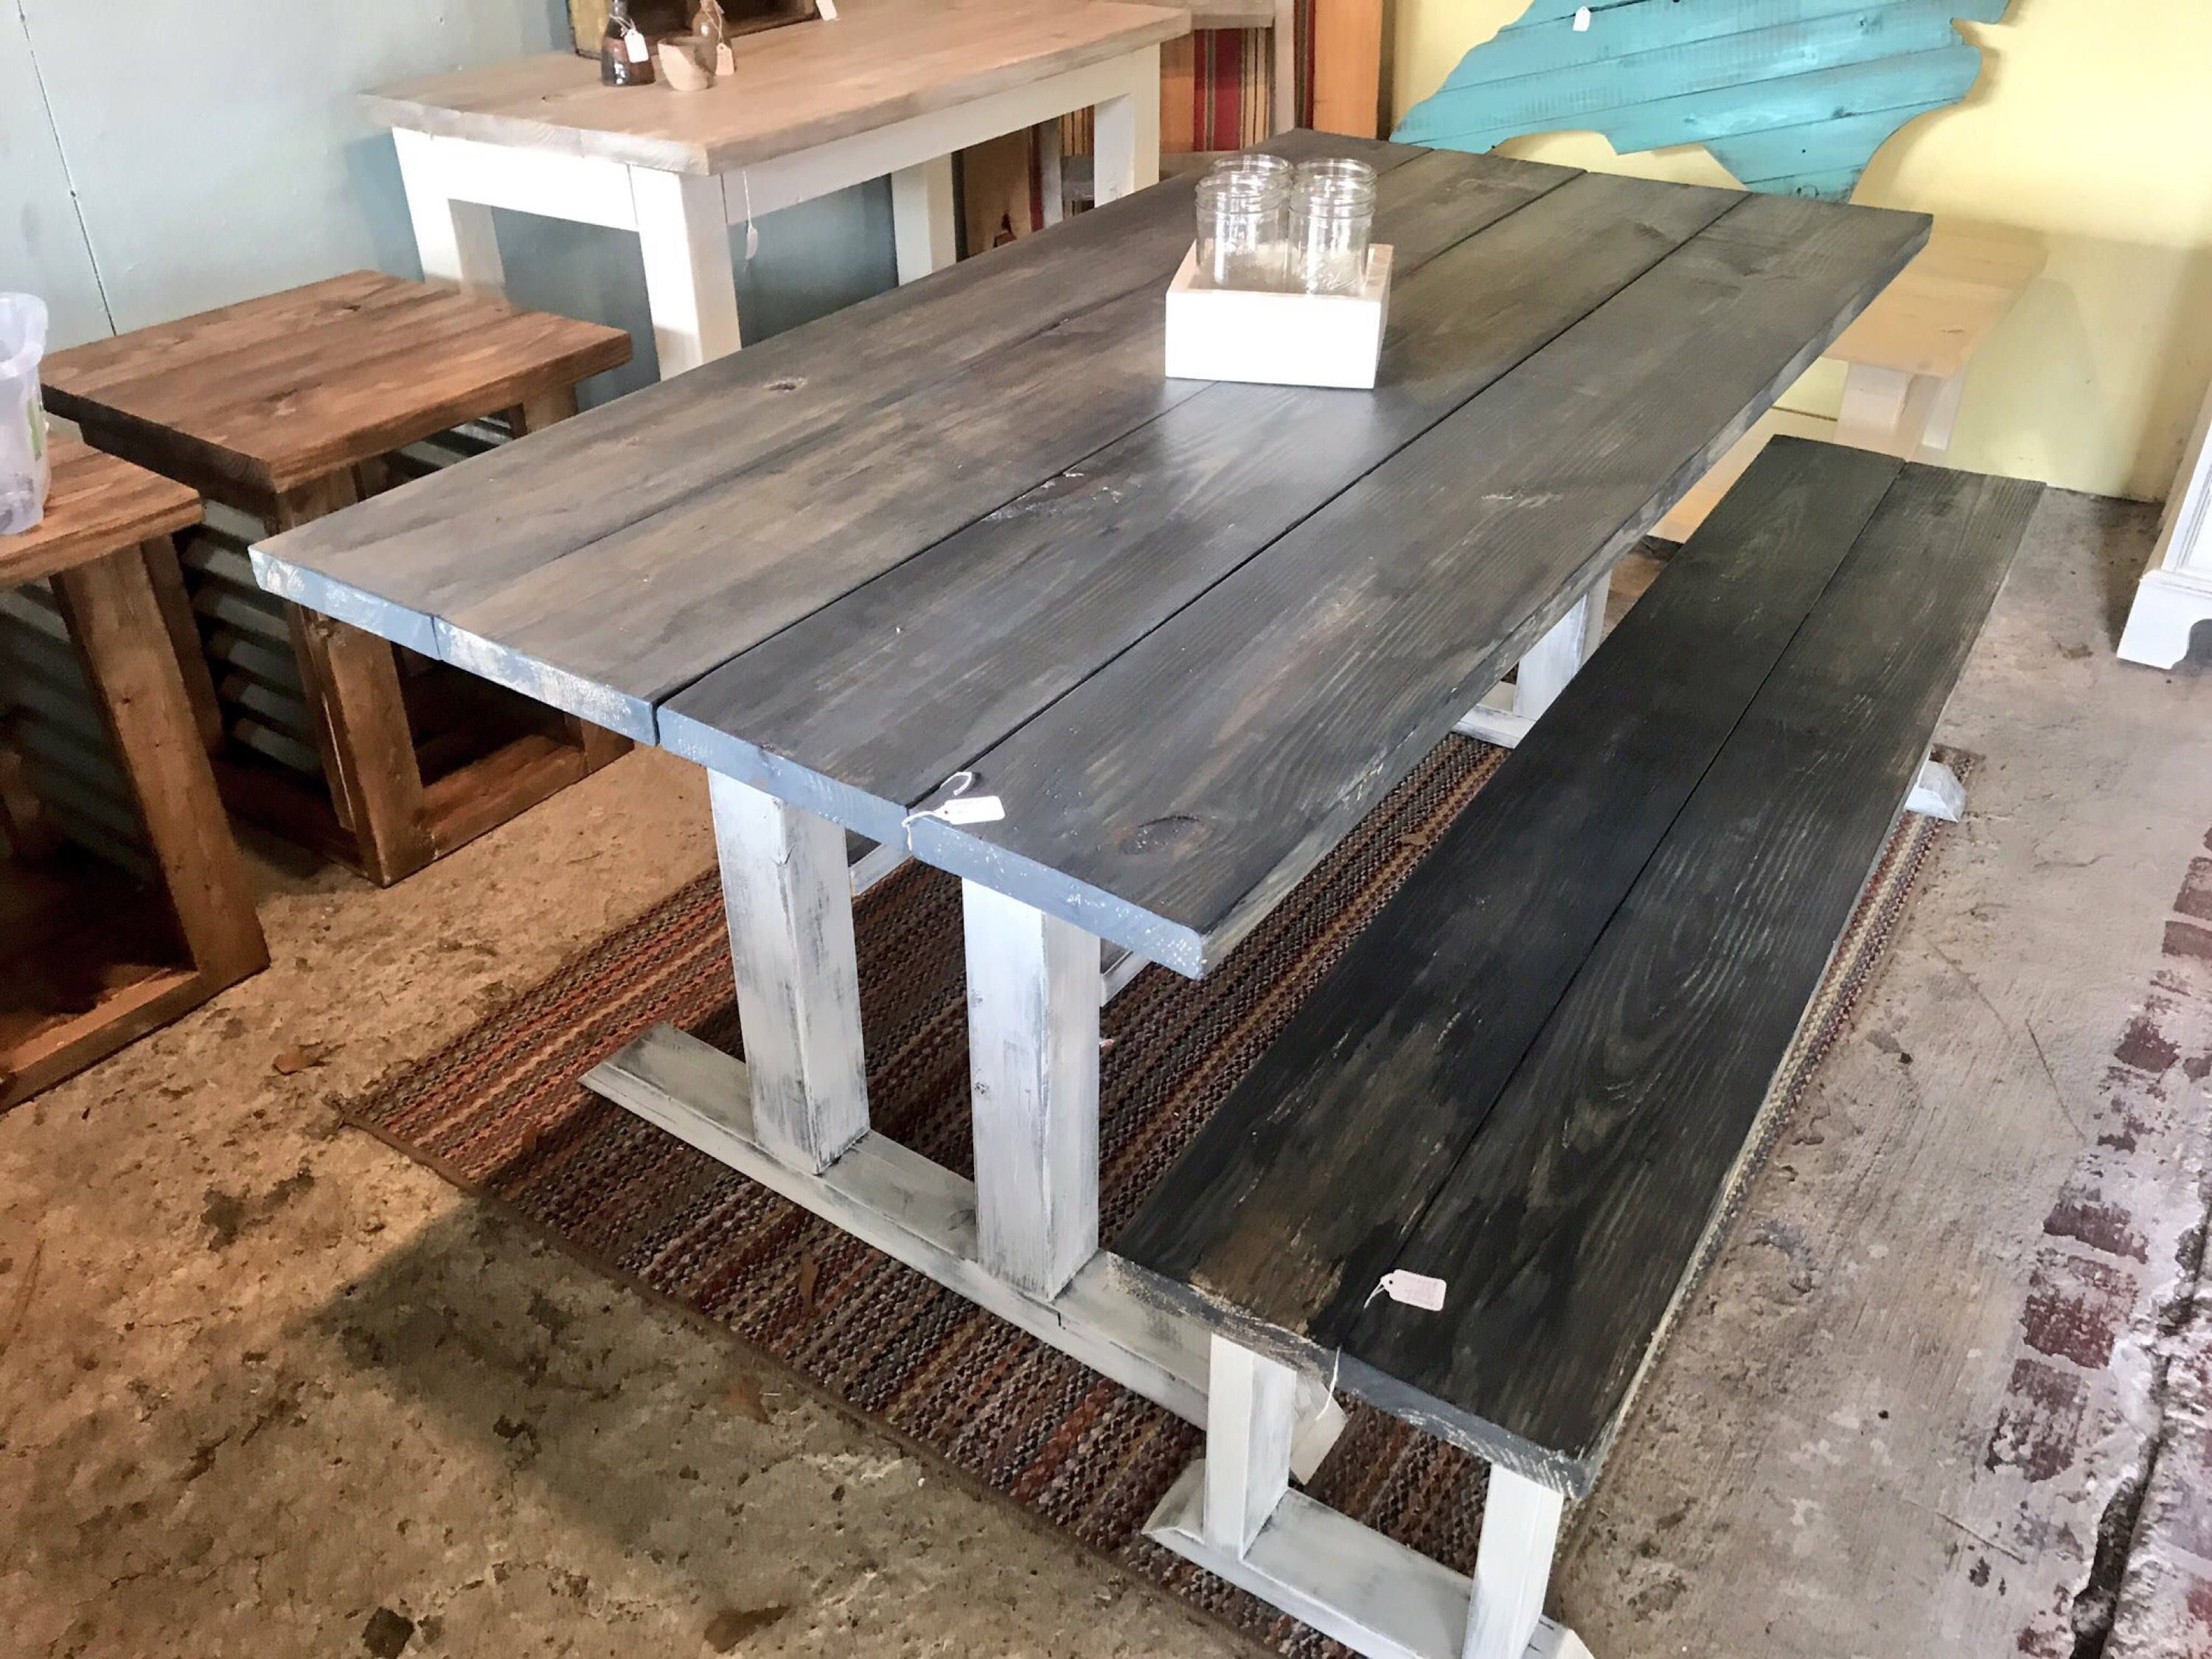 Rustic Pedestal Farmhouse Table With Long Bench Charcoal Gray With